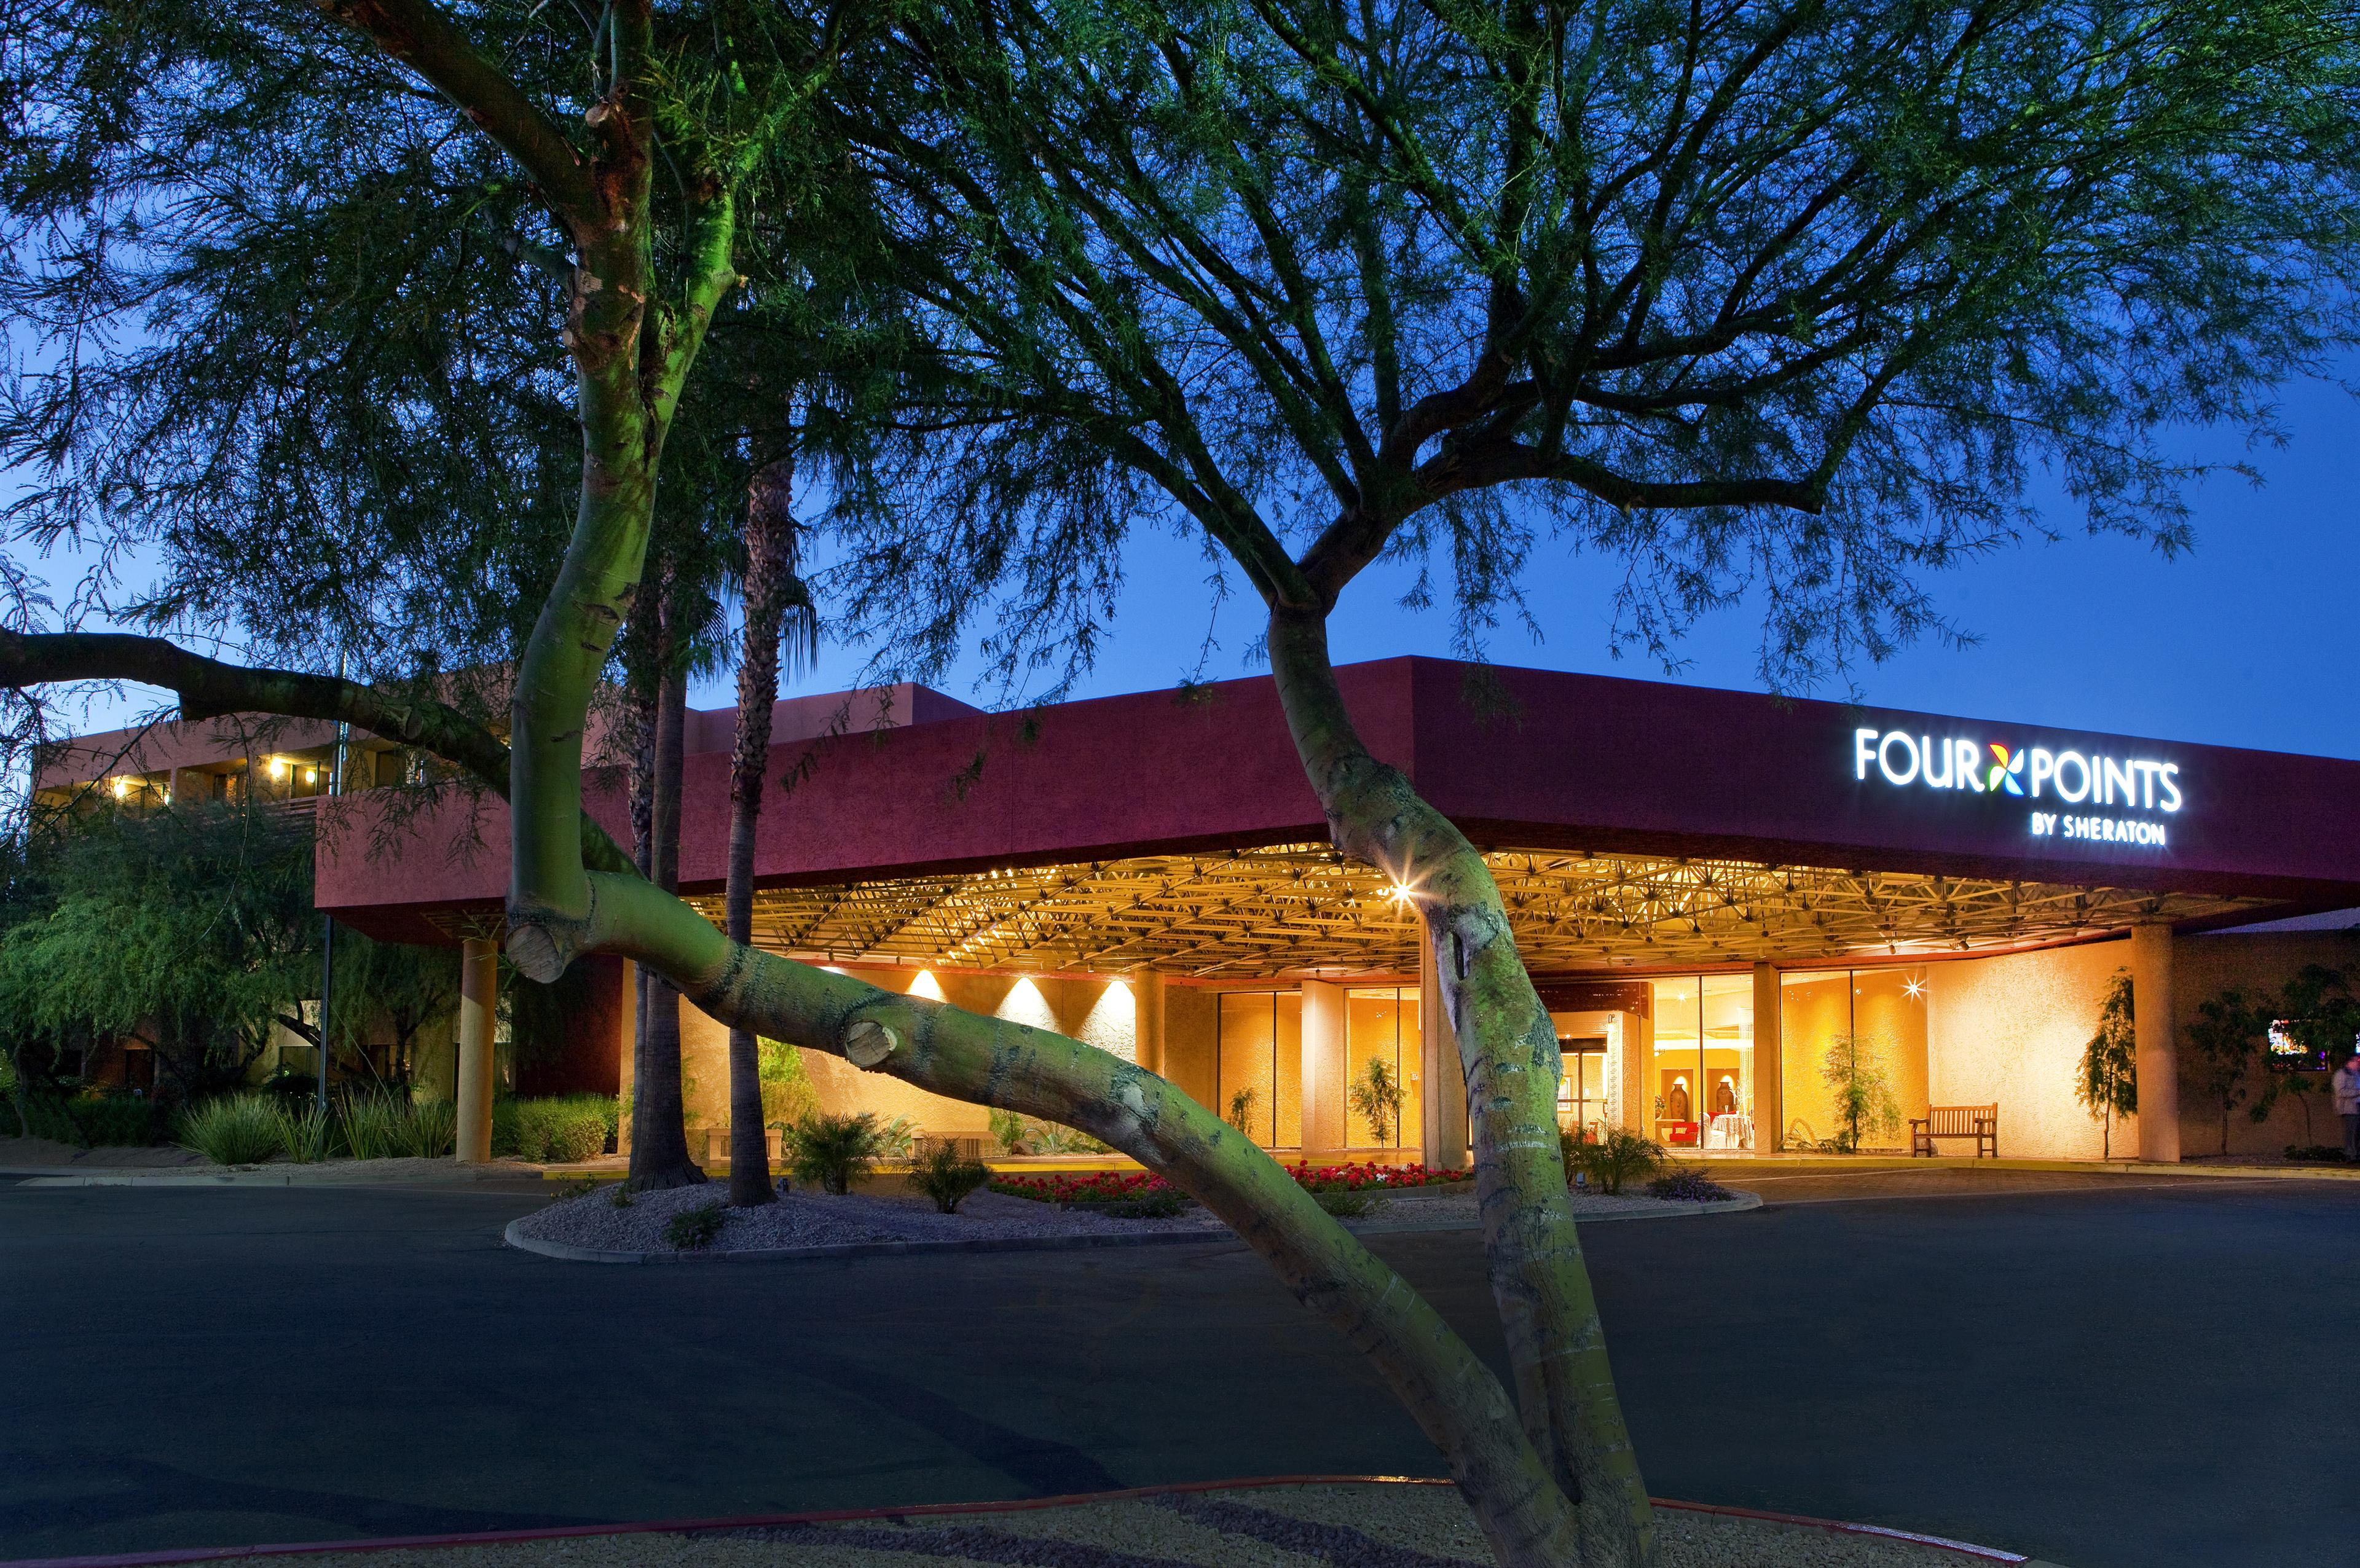 Four Points by Sheraton Phoenix North image 1